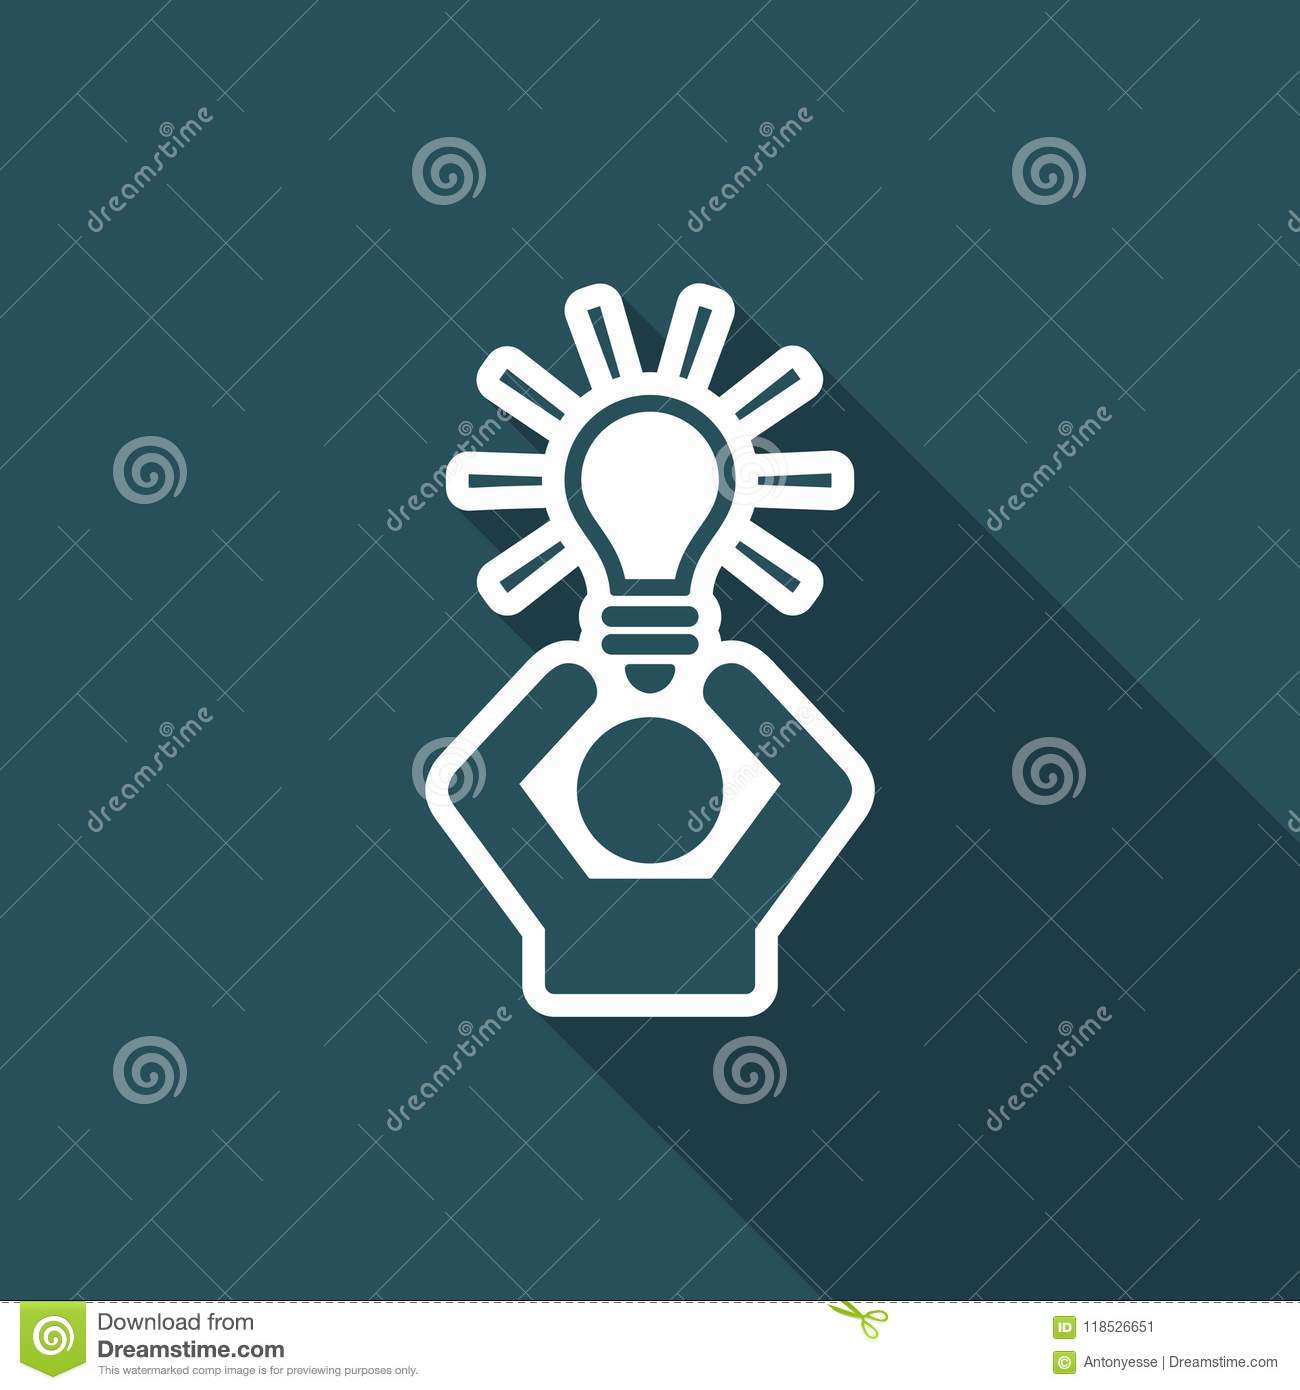 Propose Idea Or Solution Vector Web Icon Stock Vector